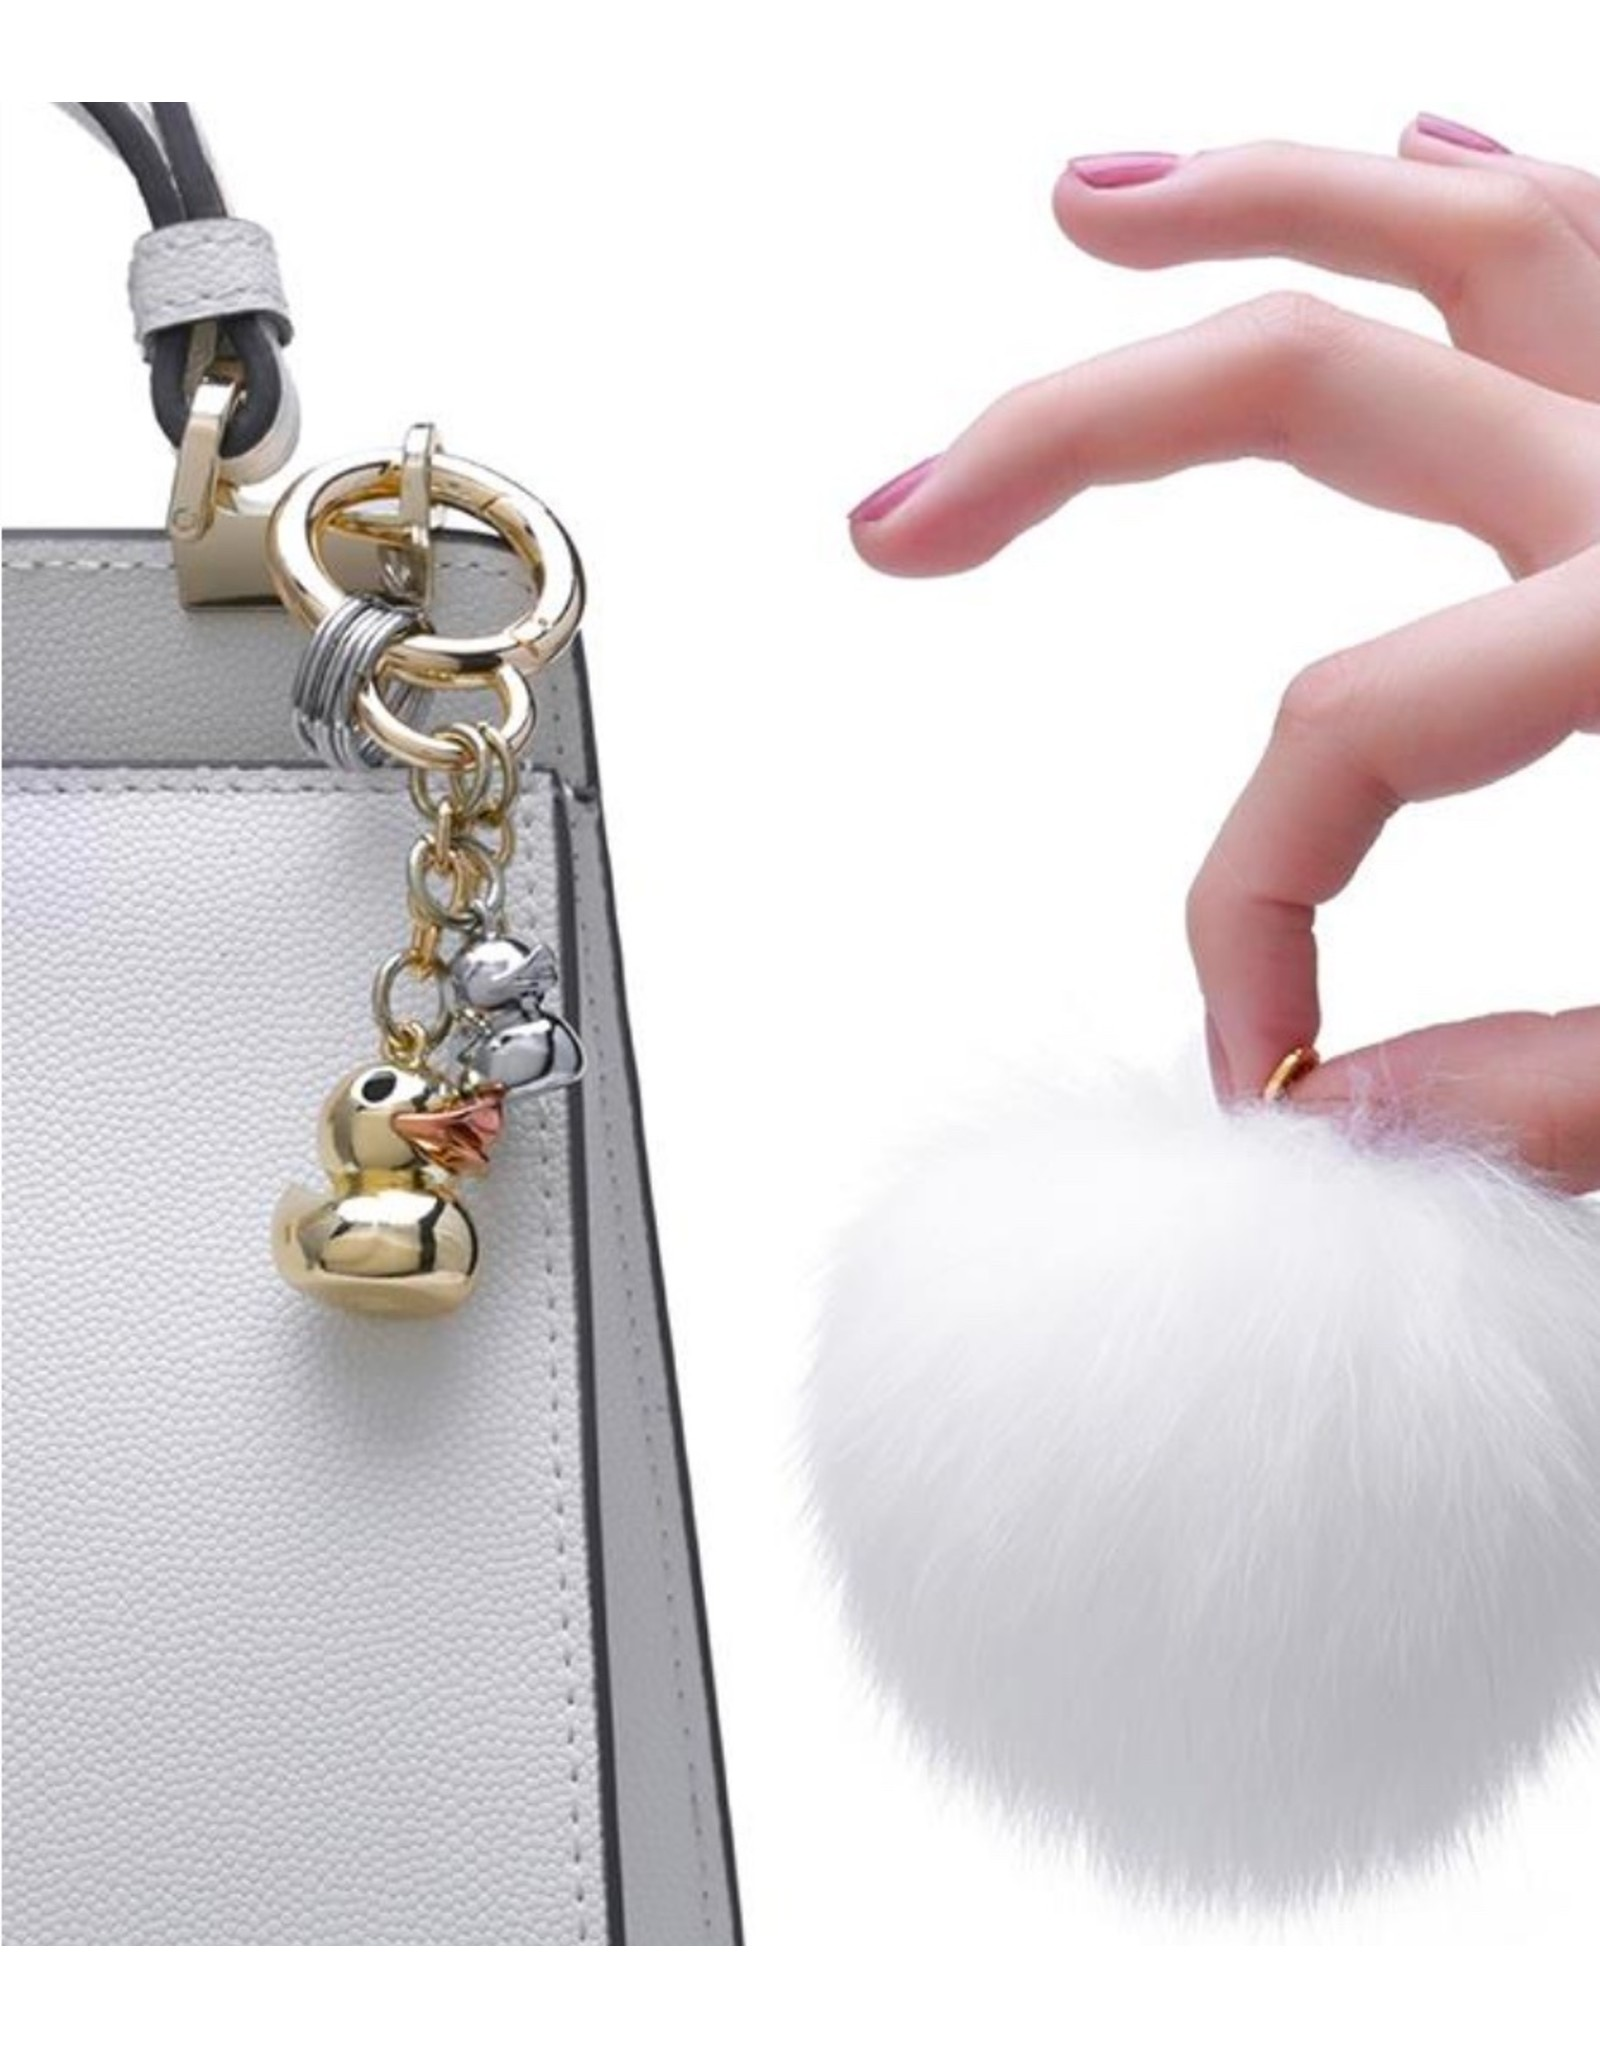 Rubber Duck Bag Charm - Gold Duck & Pom Pom